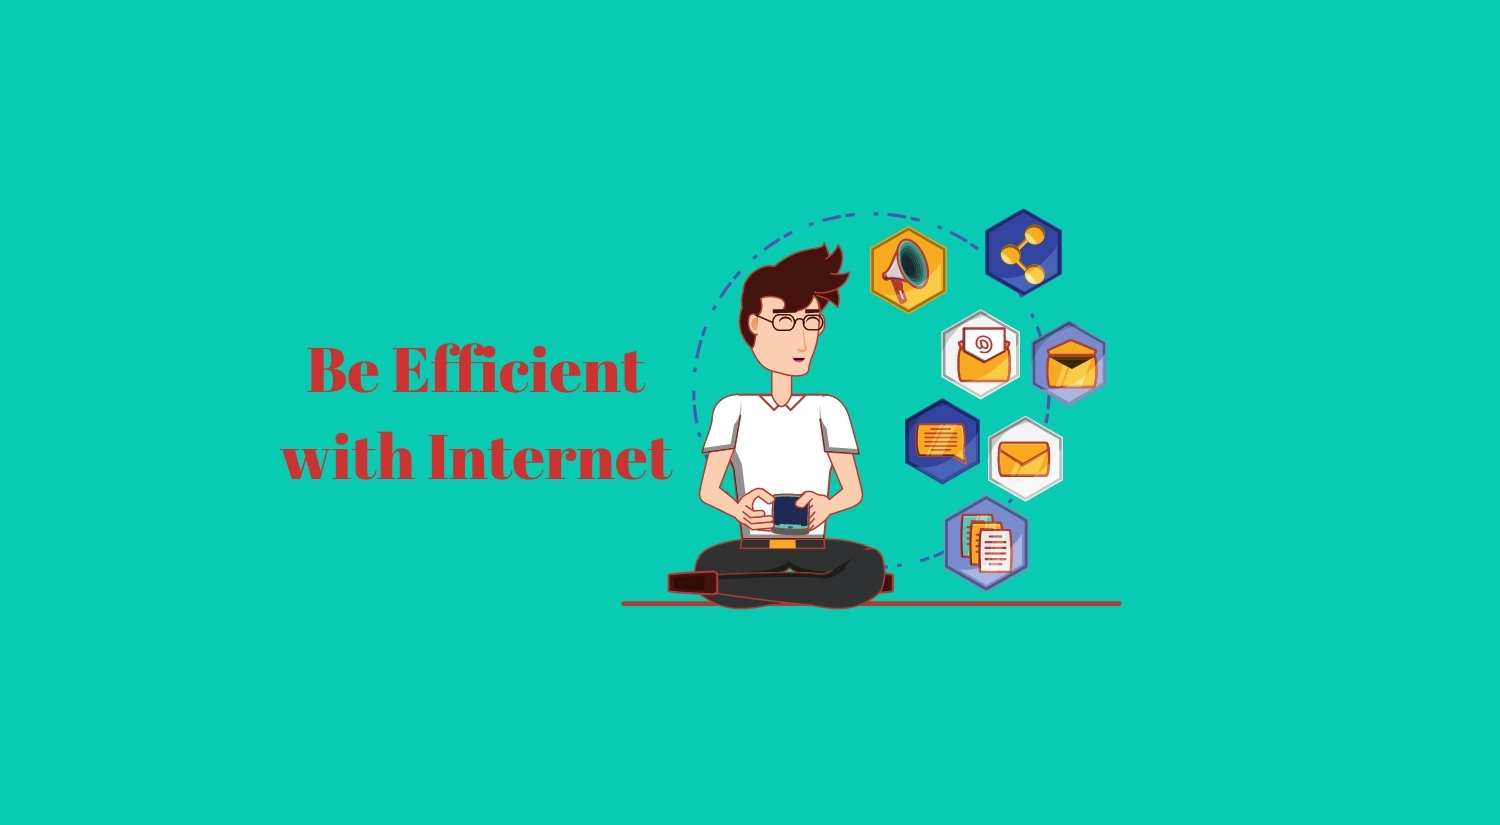 How to be efficient with internet